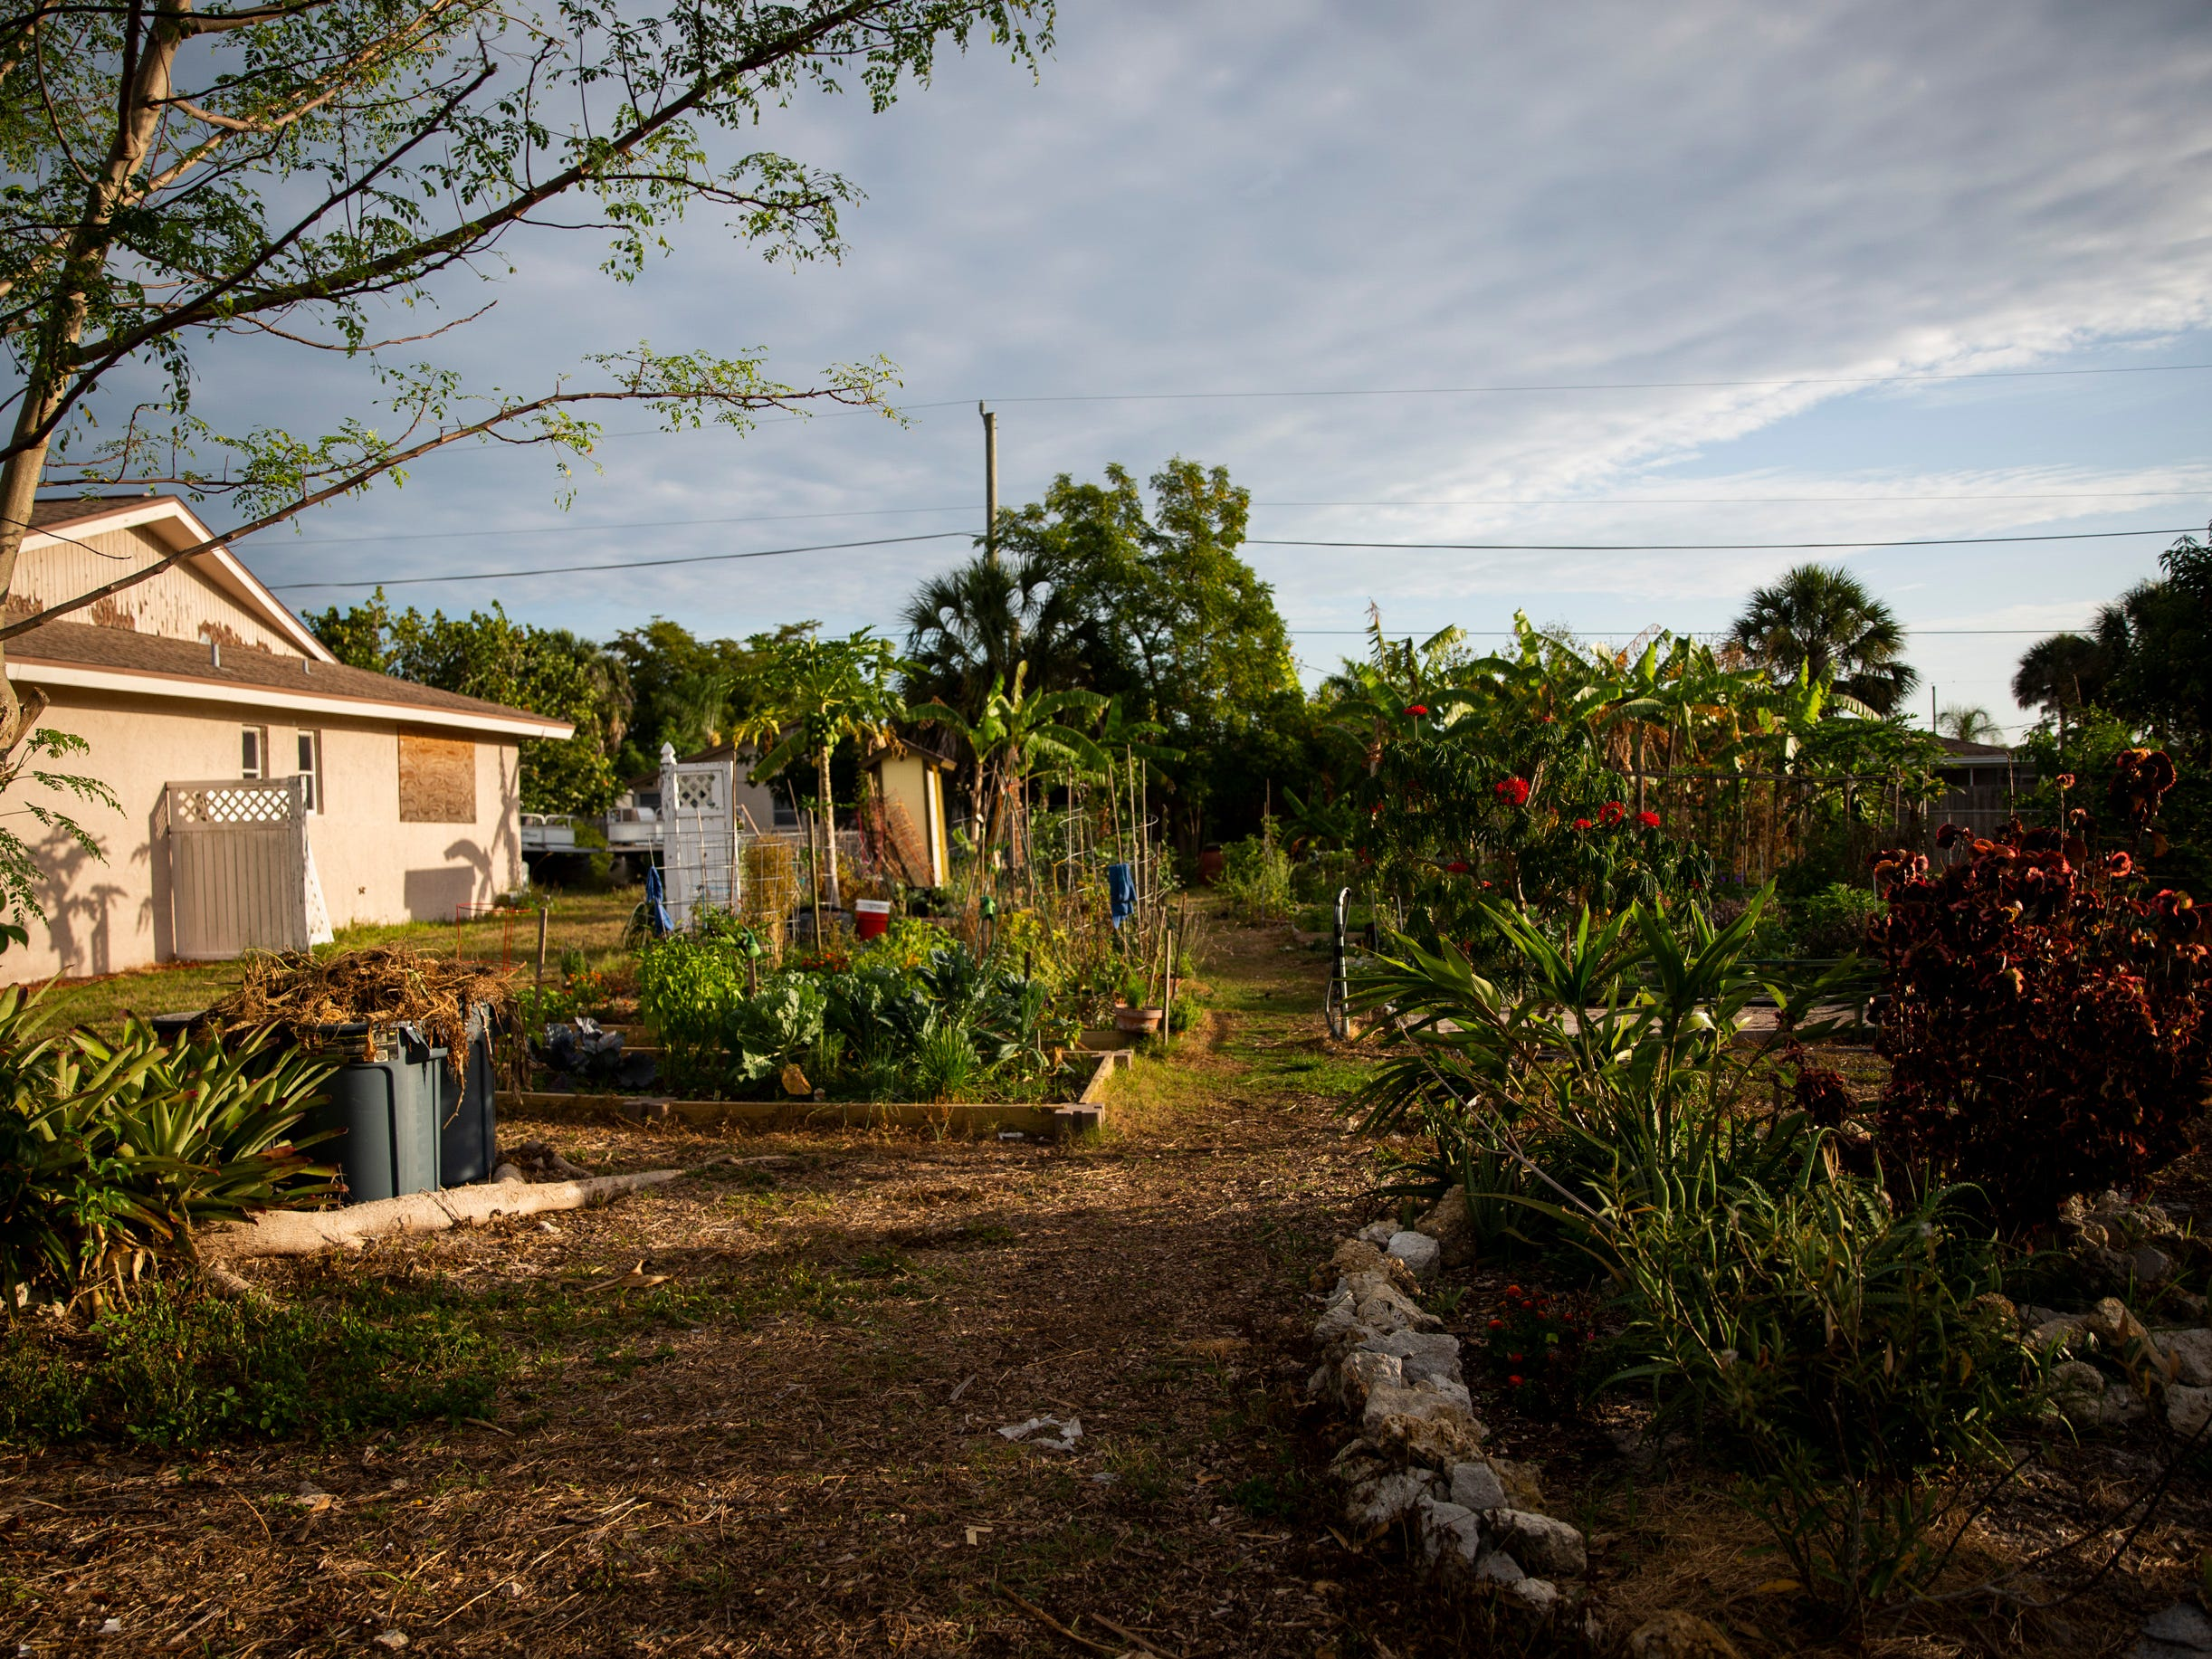 A community garden sits on a lot between two houses on 98th Avenue North in Naples Park on Tuesday, May 7, 2019. Some neighbors have complained about the garden, saying that it has attracted rodents and has led to cars parked on lawns and blocking driveways, and the garden recently received a code enforcement complaint and a notice of violation.